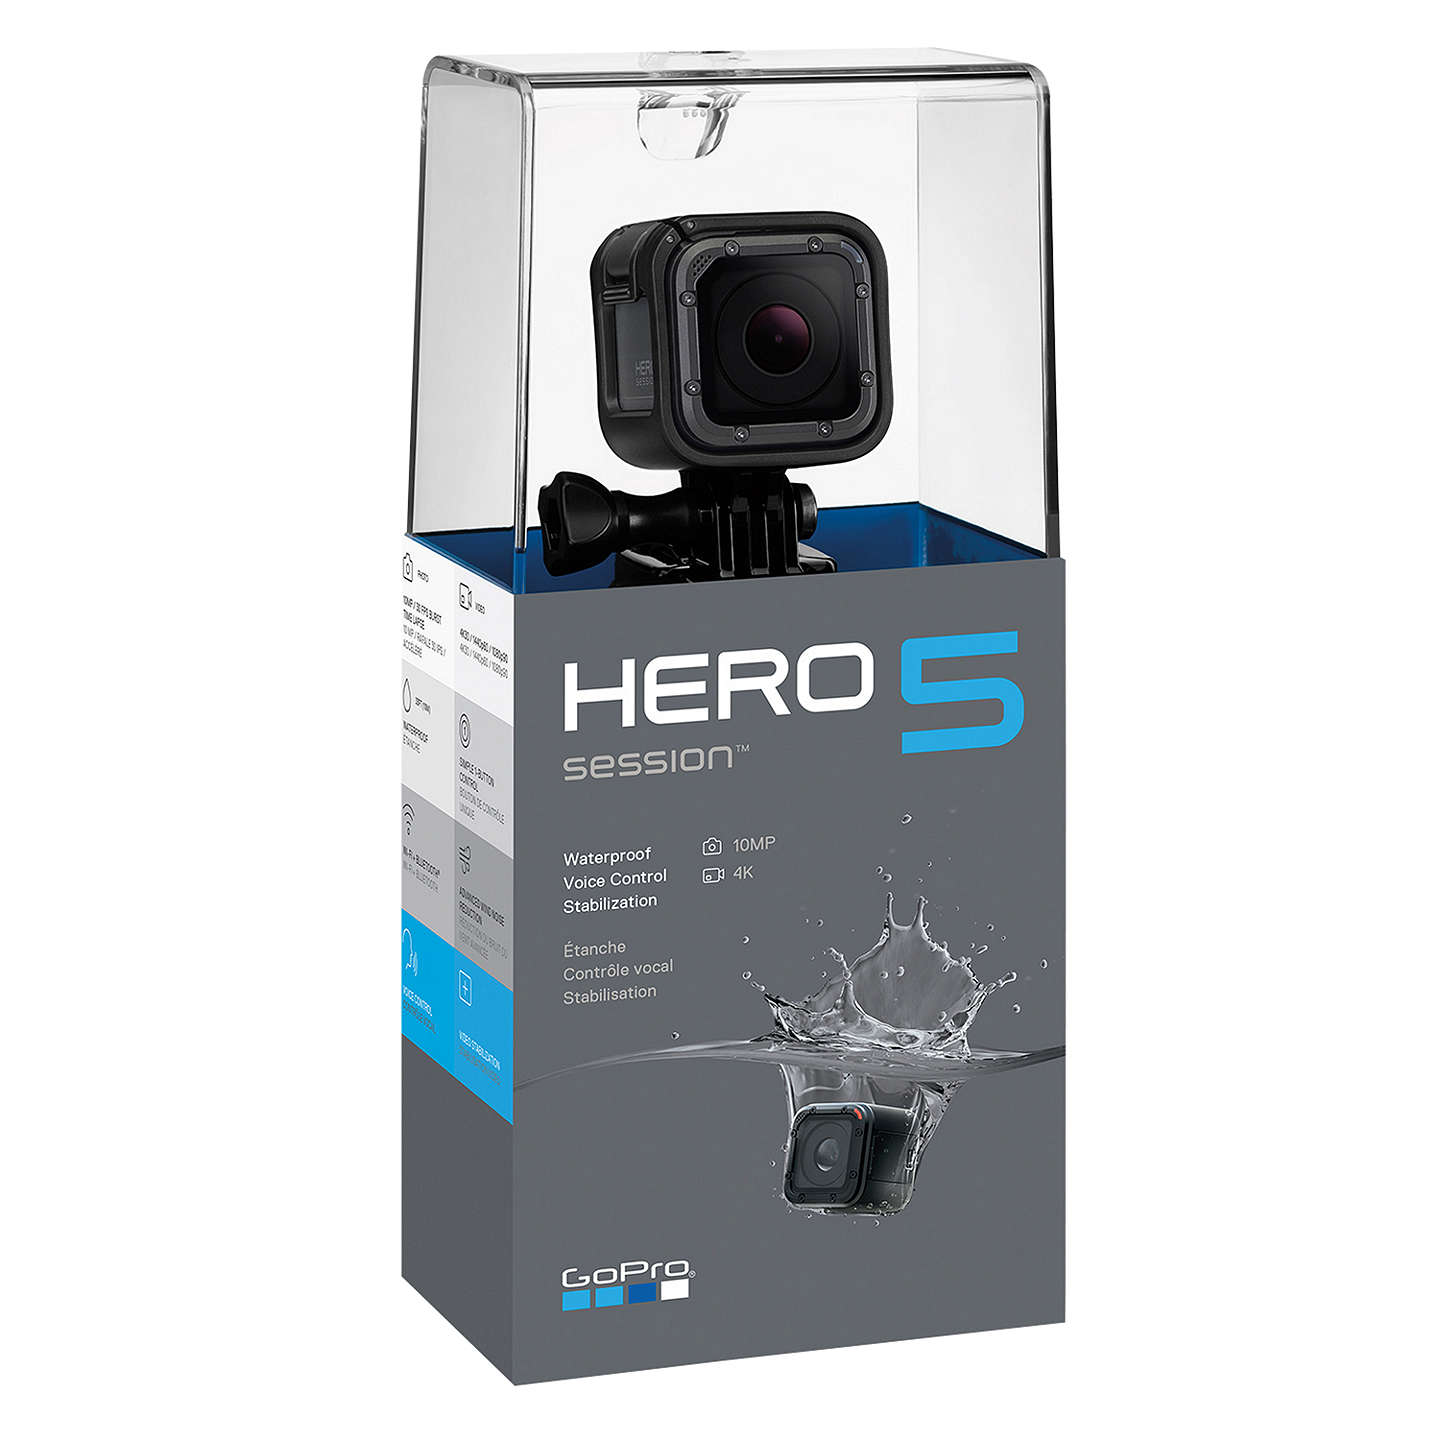 GoPro HERO5 Session Camcorder, 4K Ultra HD, 10MP, Wi-Fi